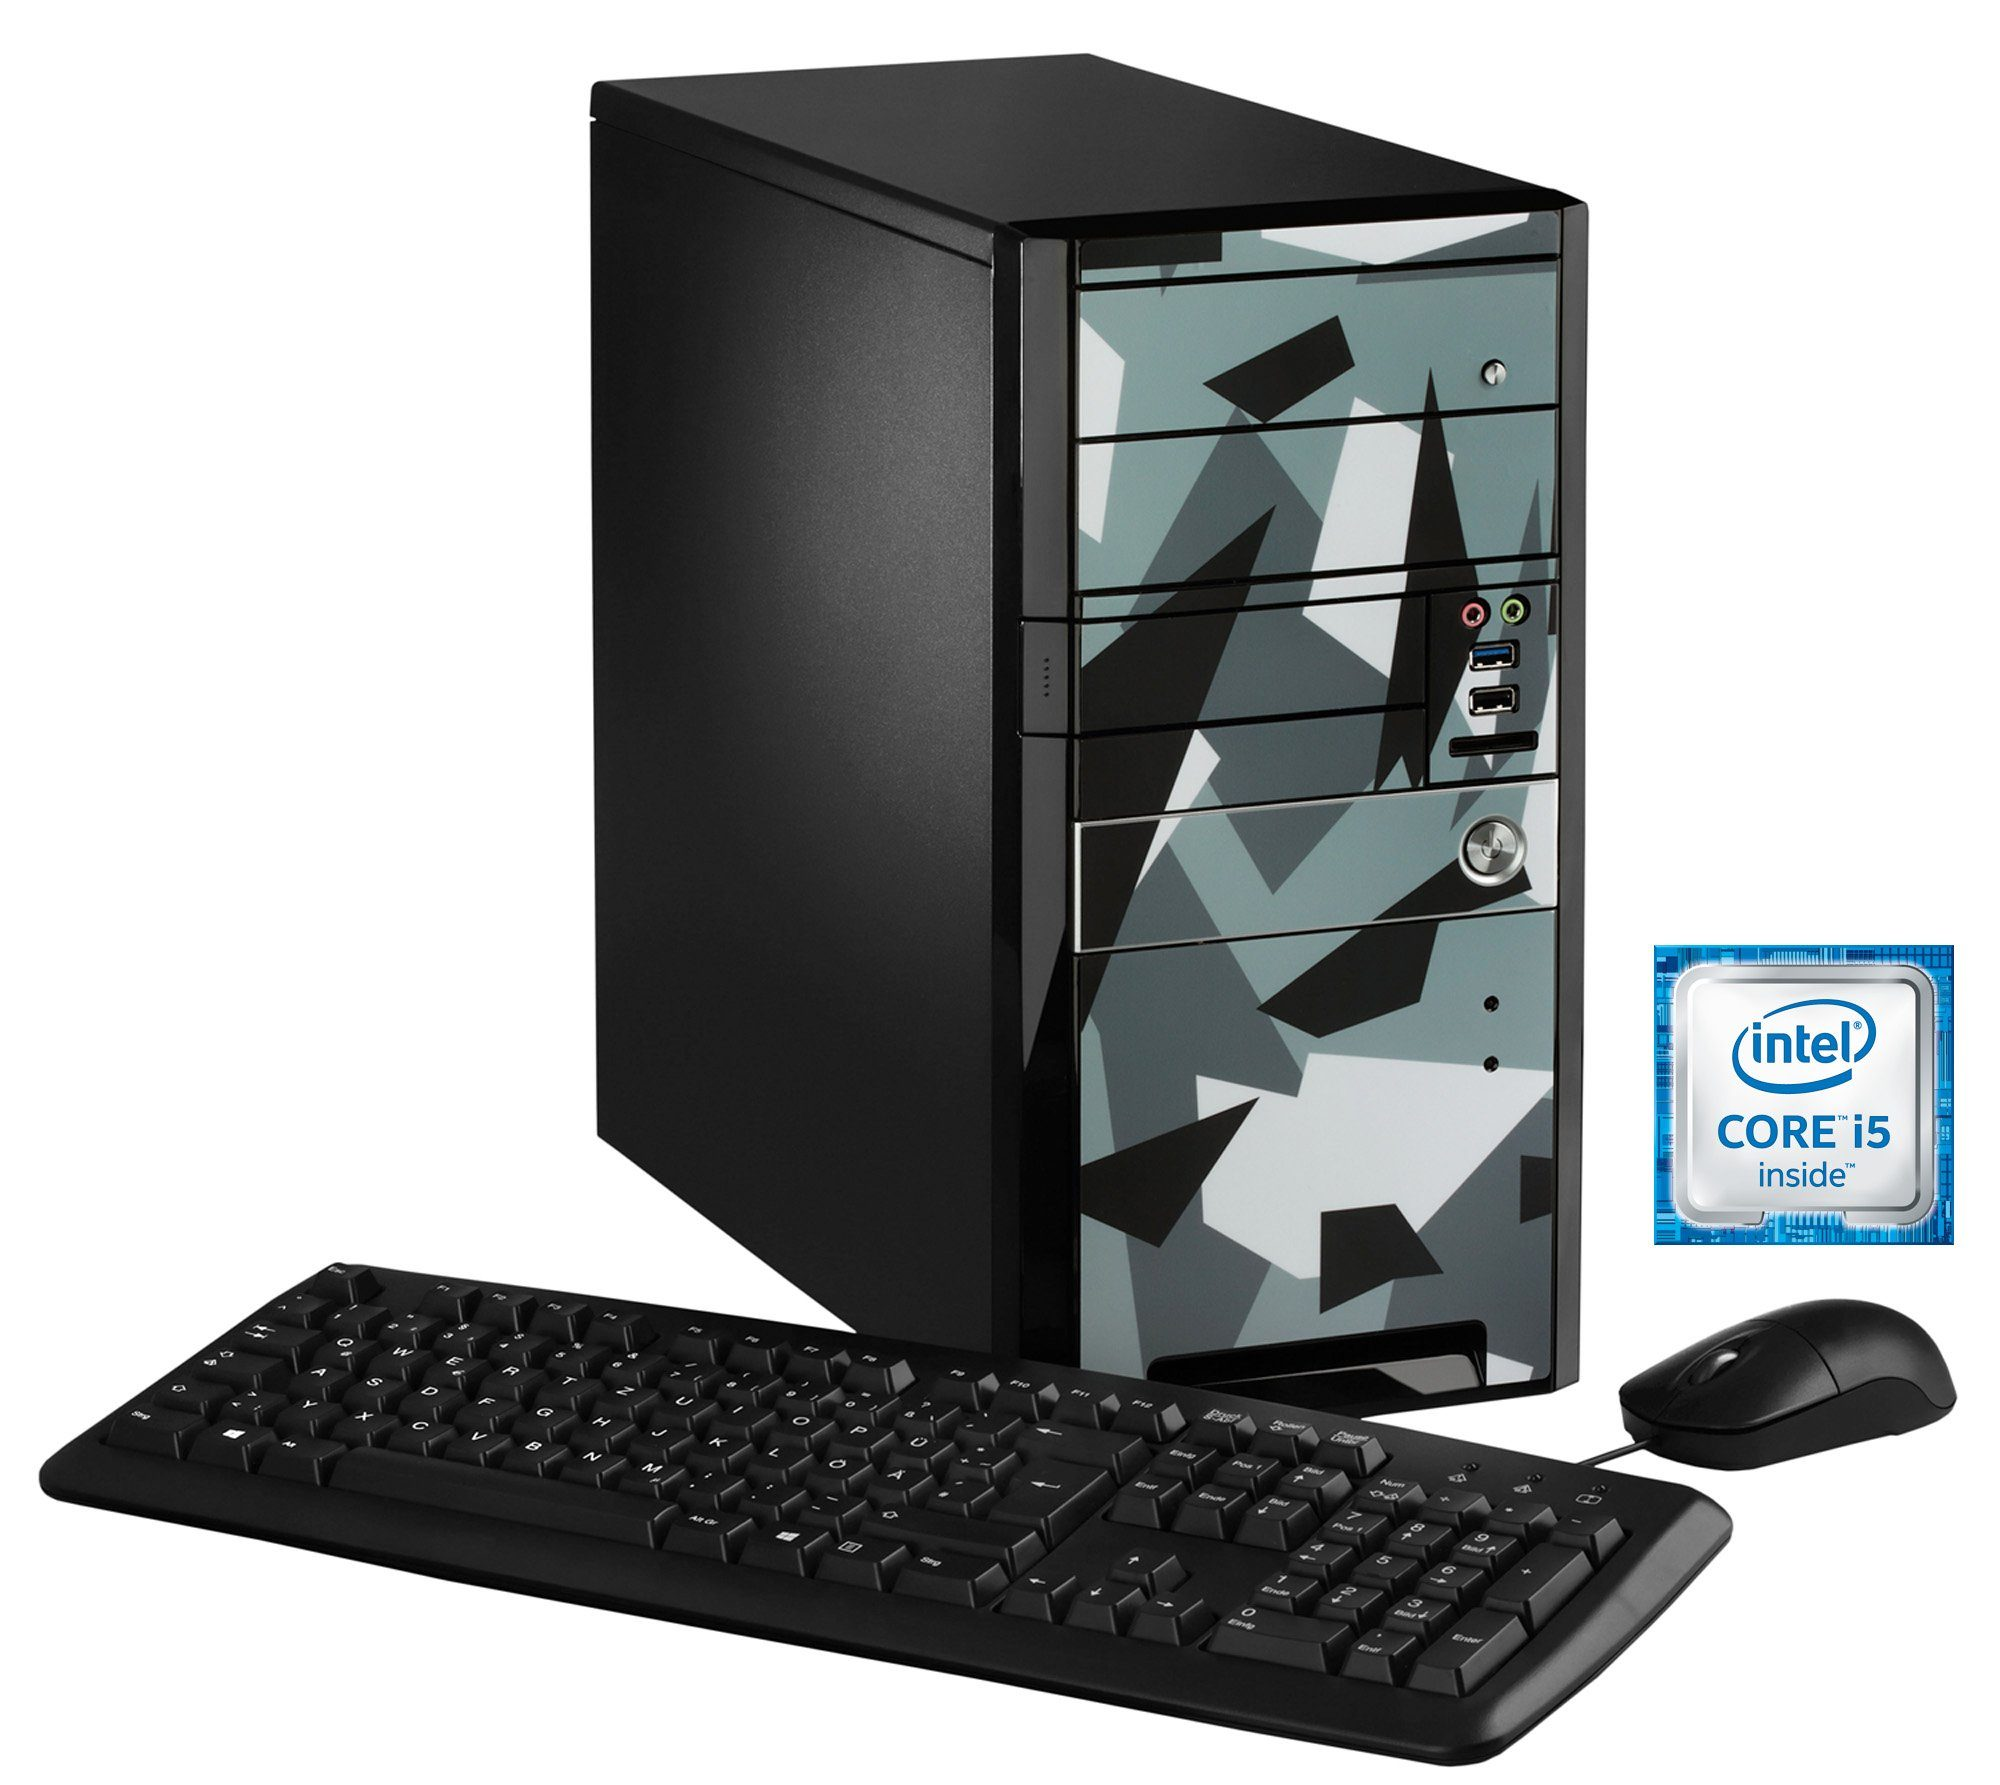 Hyrican PC Intel® i5-6400, 8GB, 1TB, AMD R7 370 4GB »Limited Edition - Ice 5138«